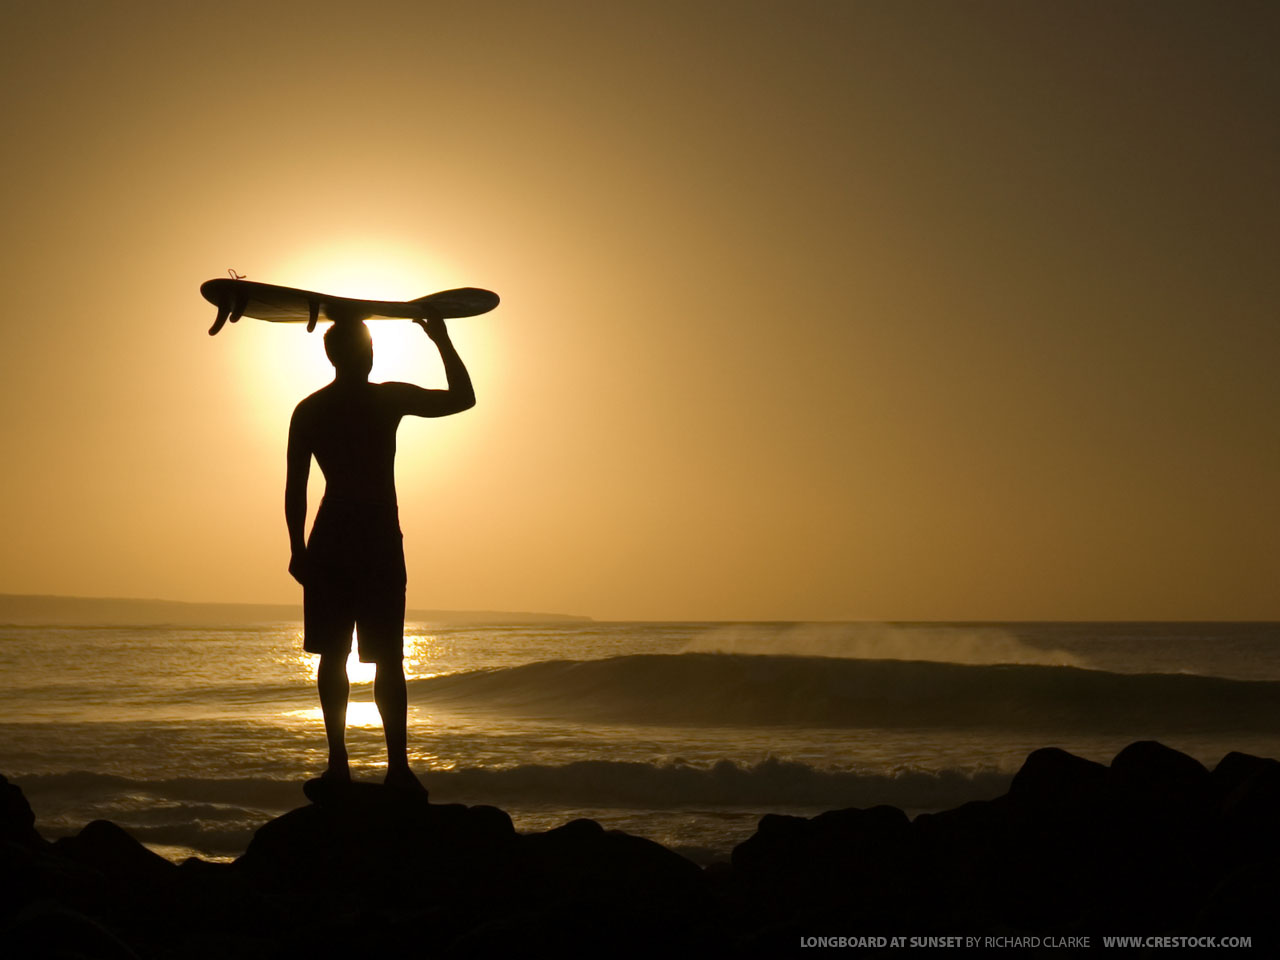 longboard surfing wallpaper - group picture, image by tag ...